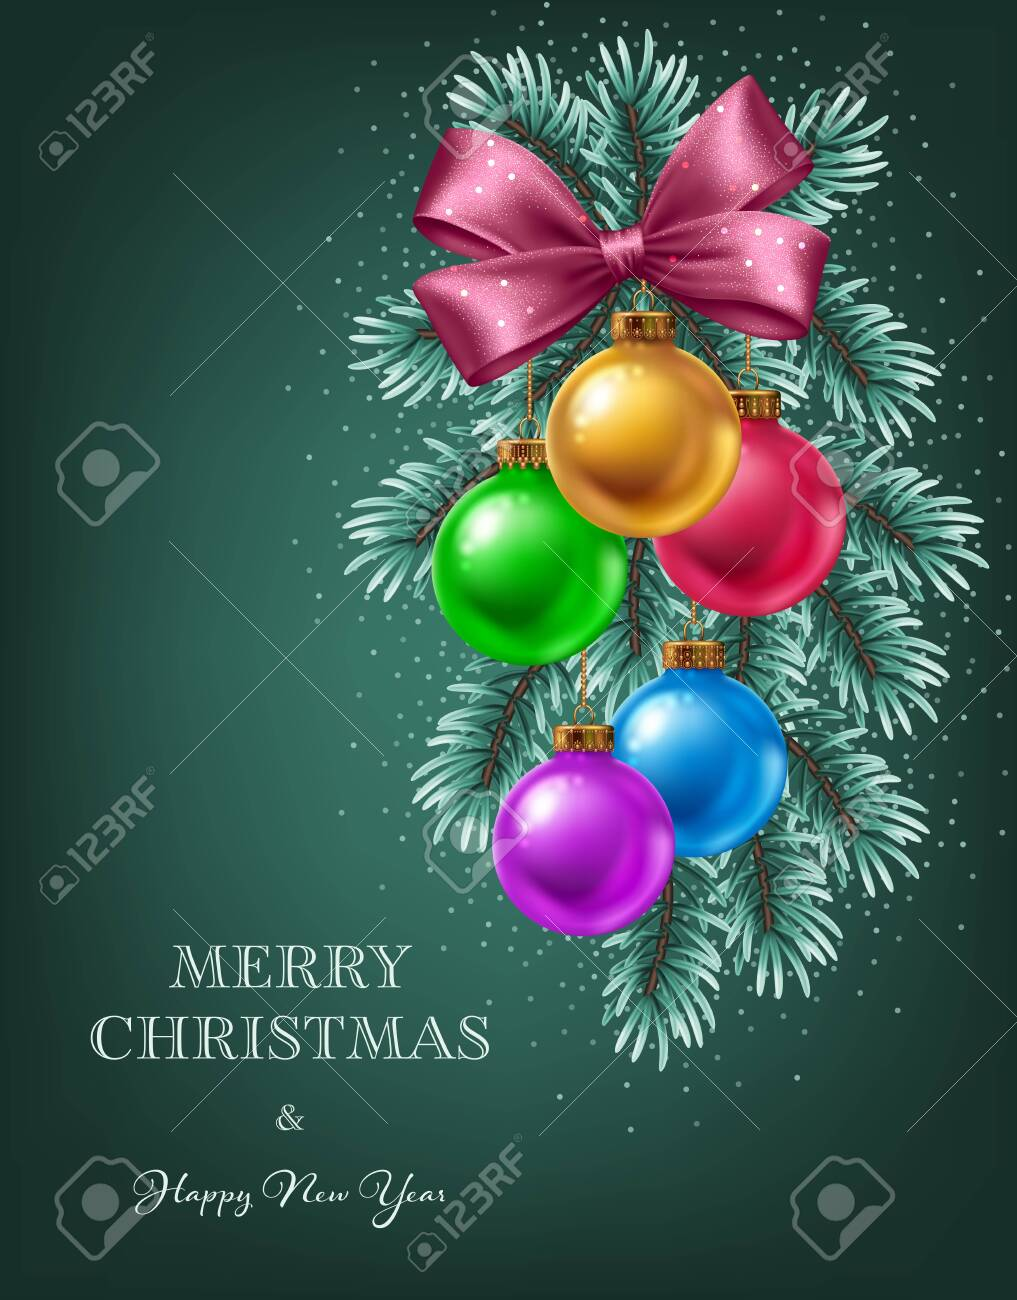 Christmas Tree Branches With Hanging Colorful Balls And Satin Royalty Free Cliparts Vectors And Stock Illustration Image 147741889